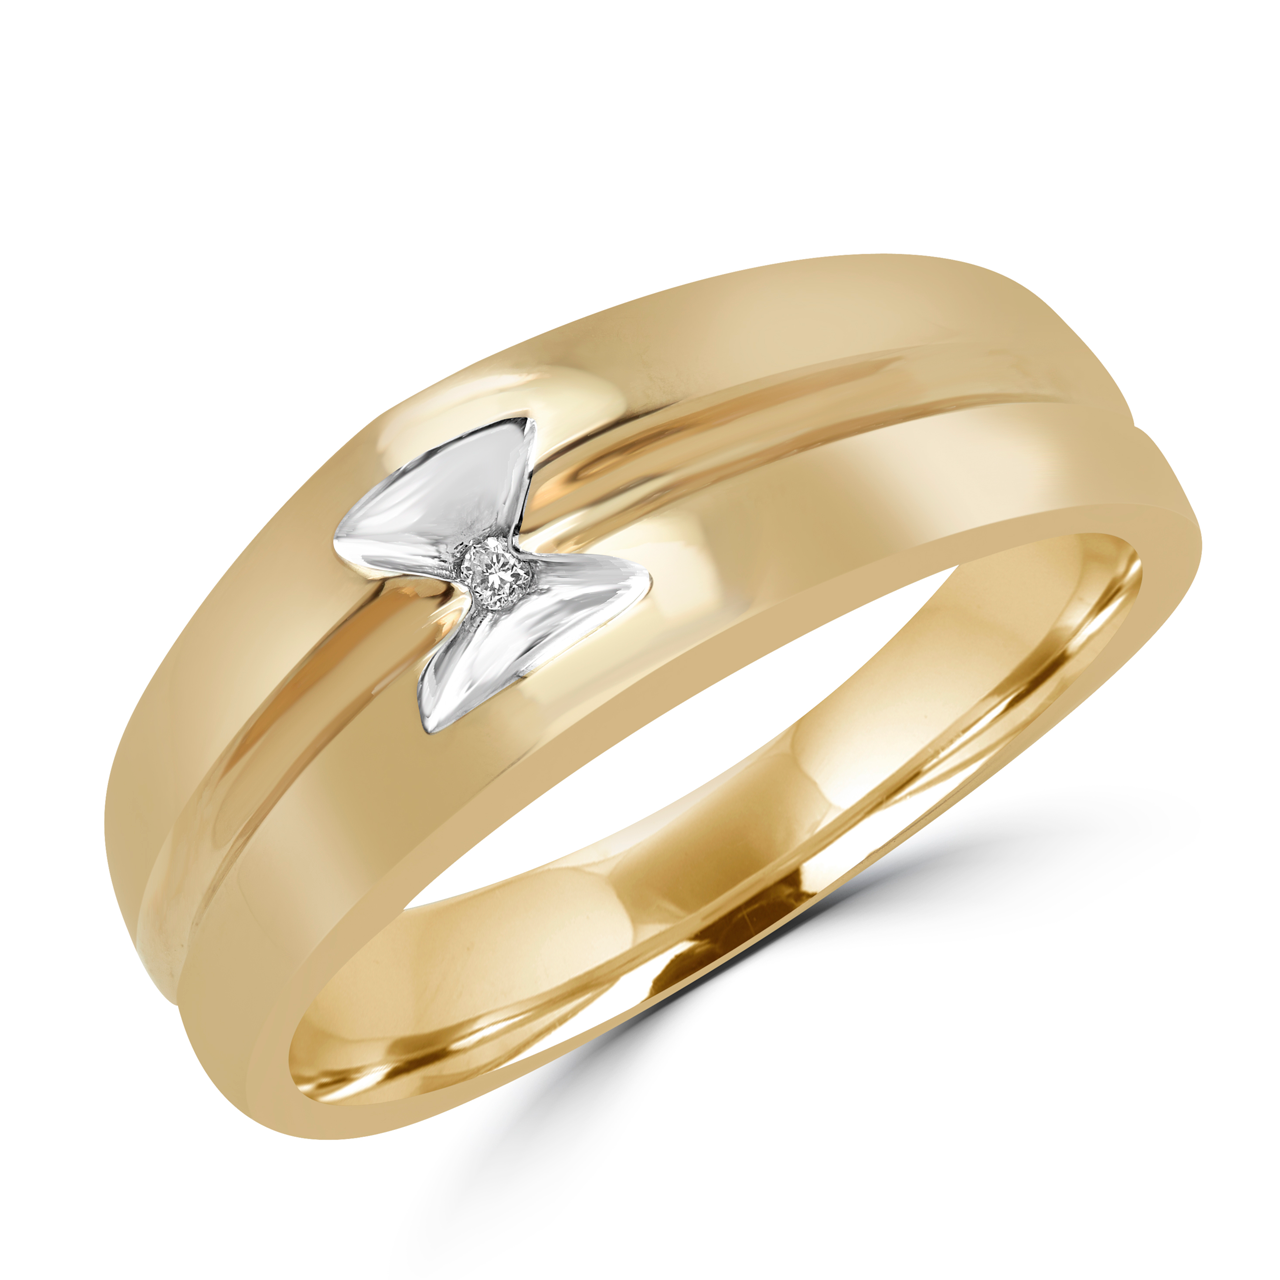 men's stylish ring in yellow gold